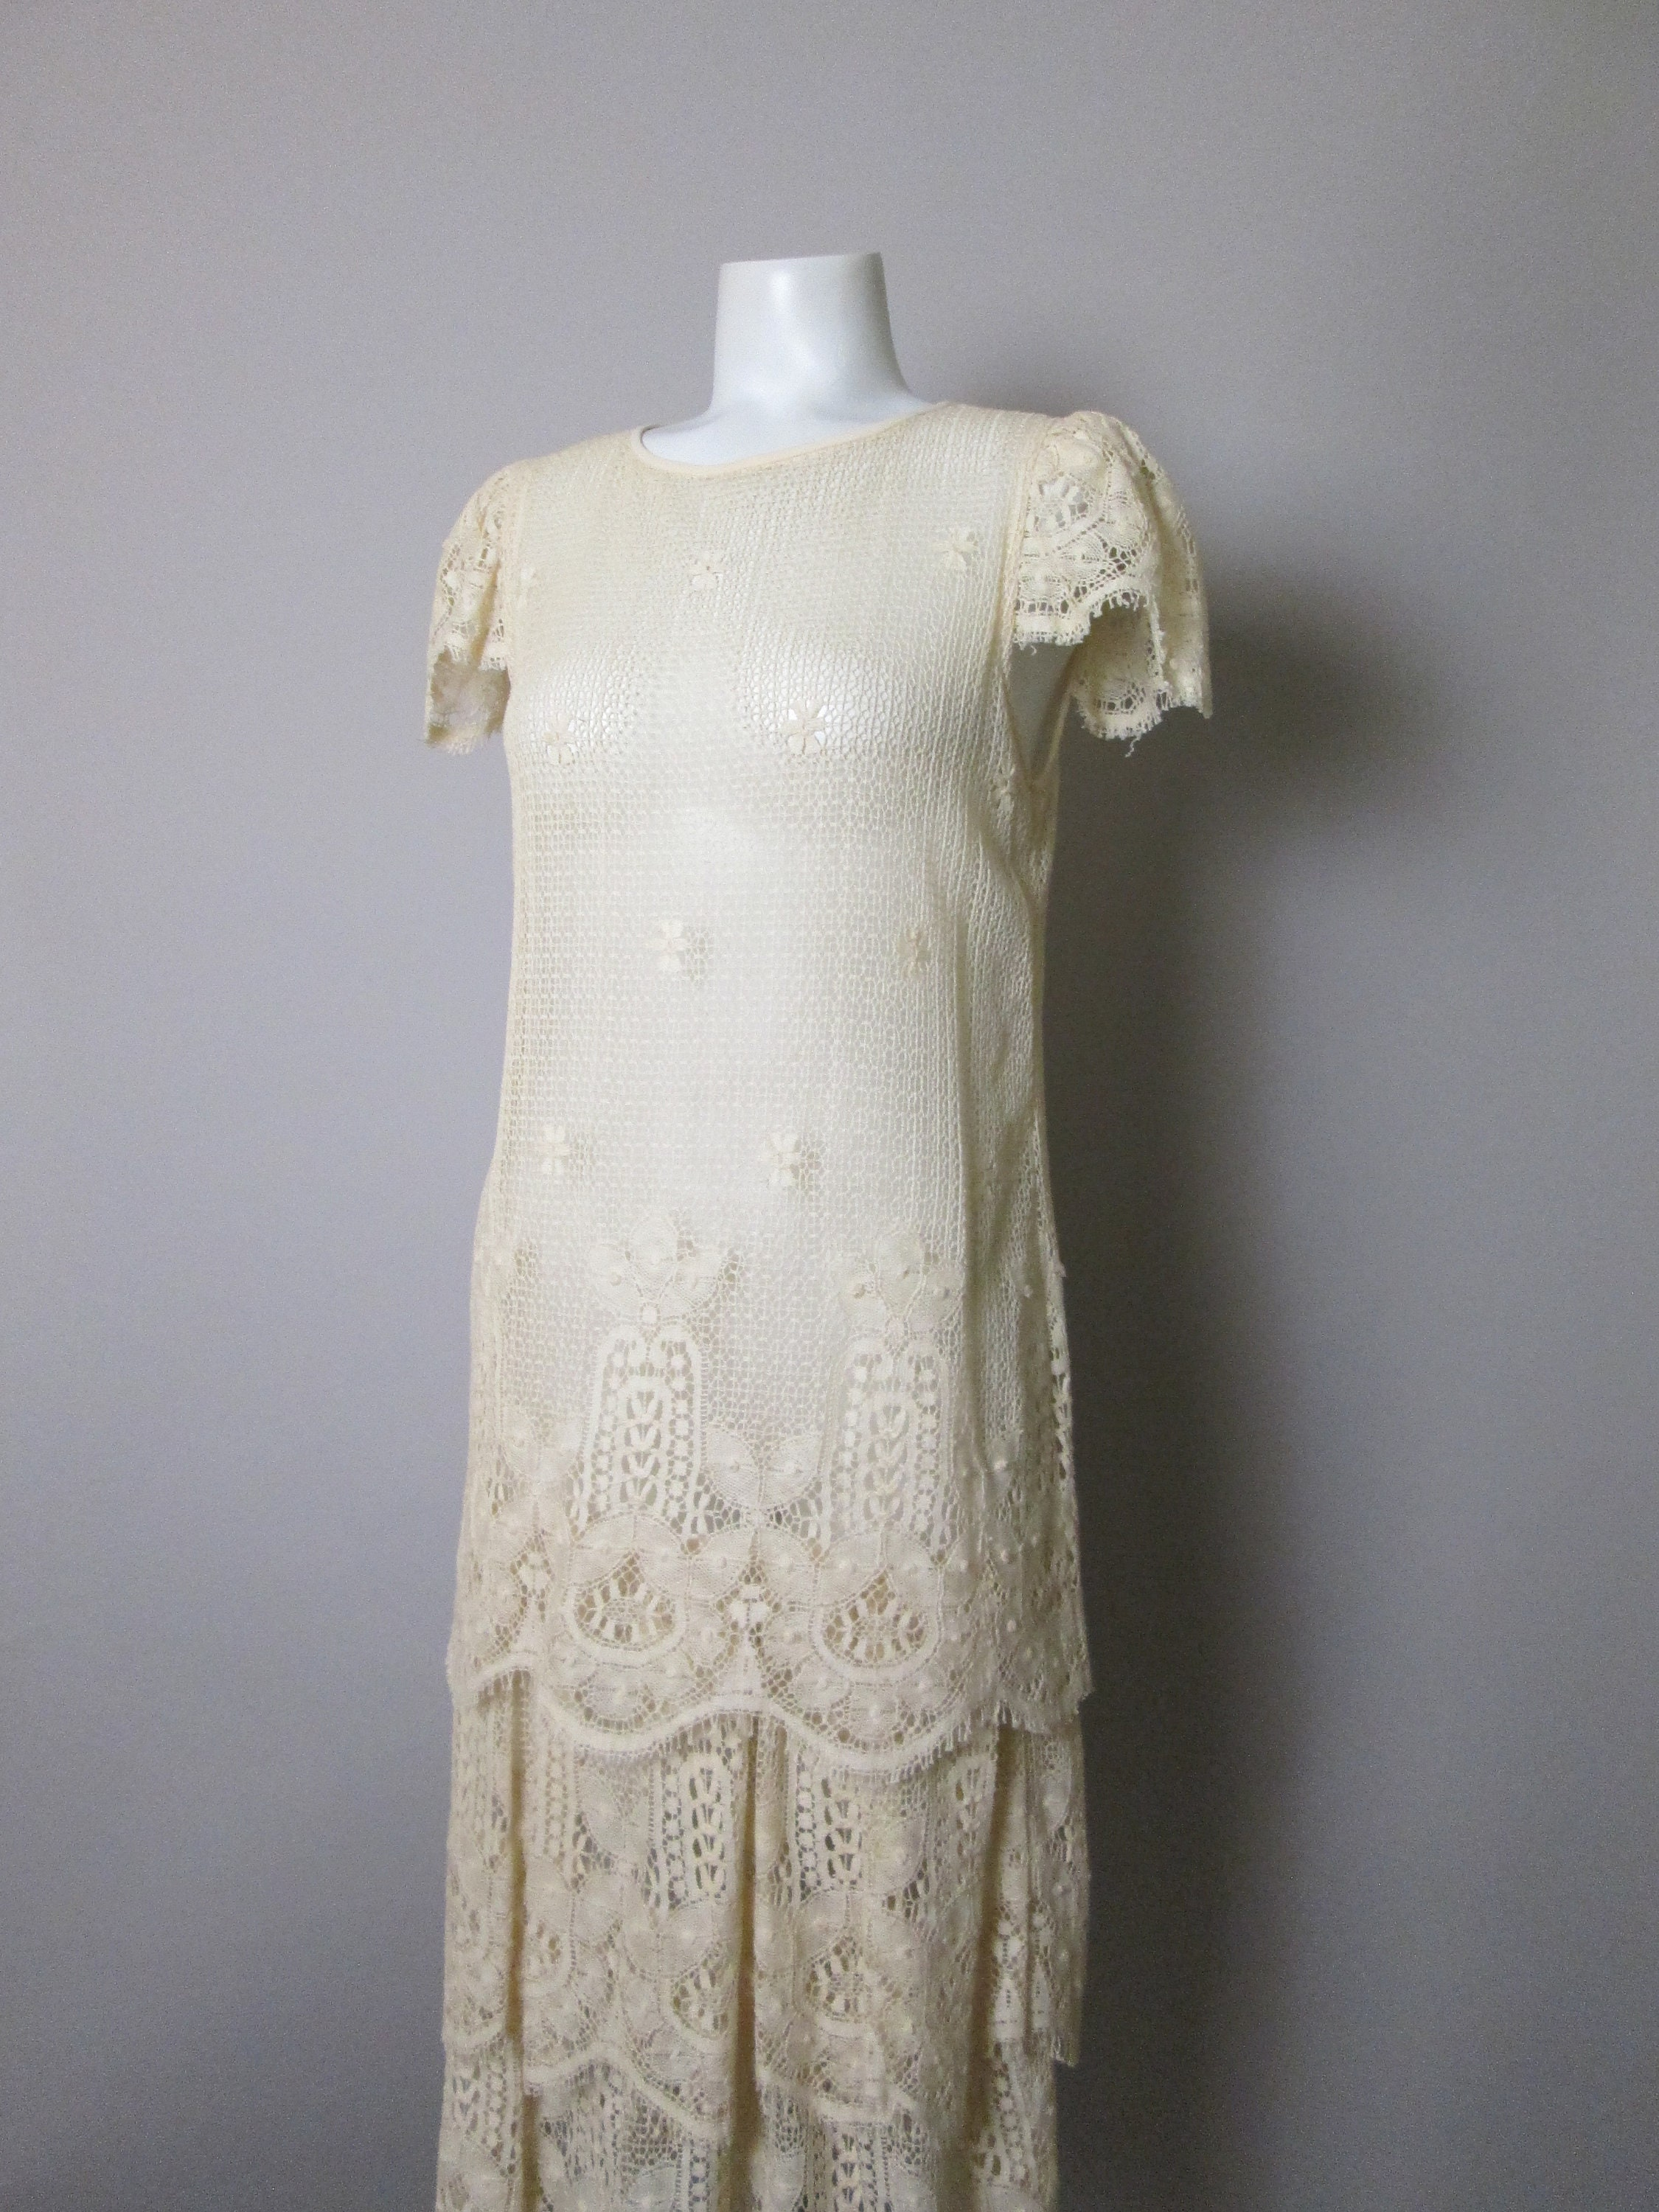 80s Dresses | Casual to Party Dresses 1920S Style Lace Flapper Dress. From 1980S, Made With Filet Lace, Cap Sleeves, Tiered Sculpted Panels, Gorgeous Vintage Chic. Size Small 6 $0.00 AT vintagedancer.com